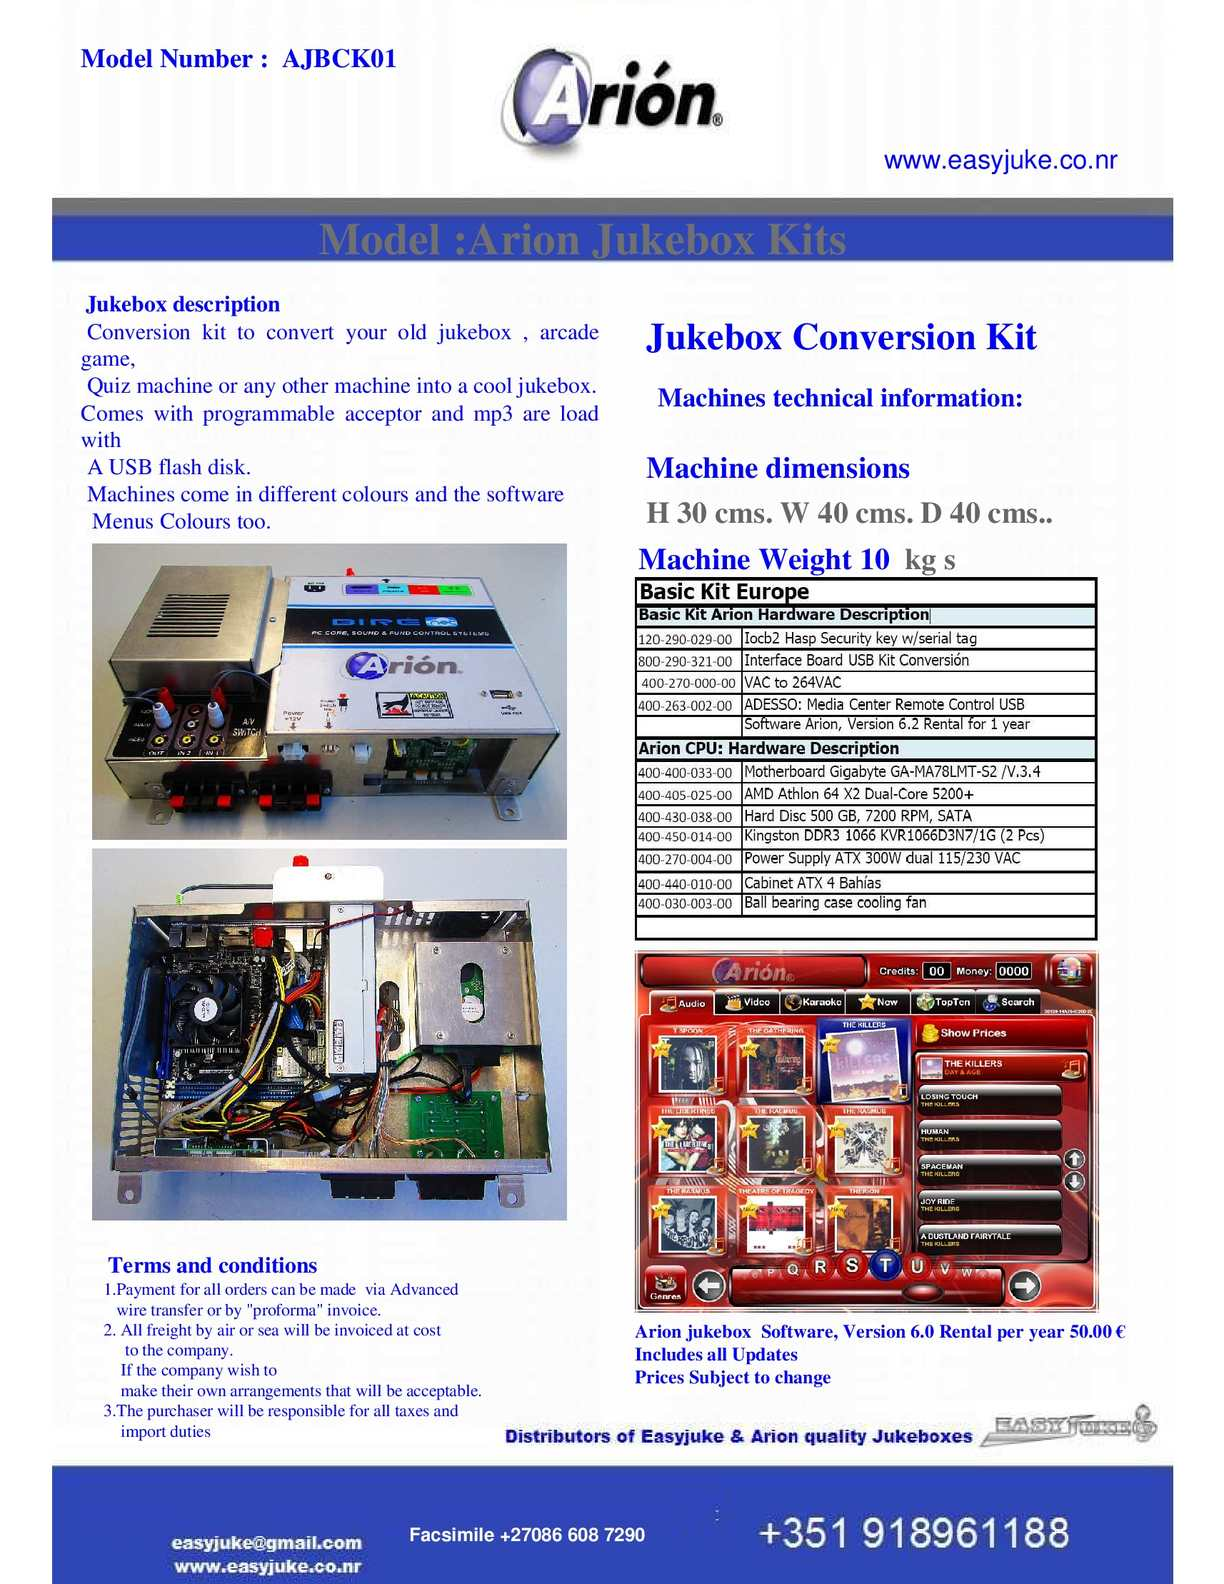 Calaméo - Arion Jukebox D I Y Kits Brochure